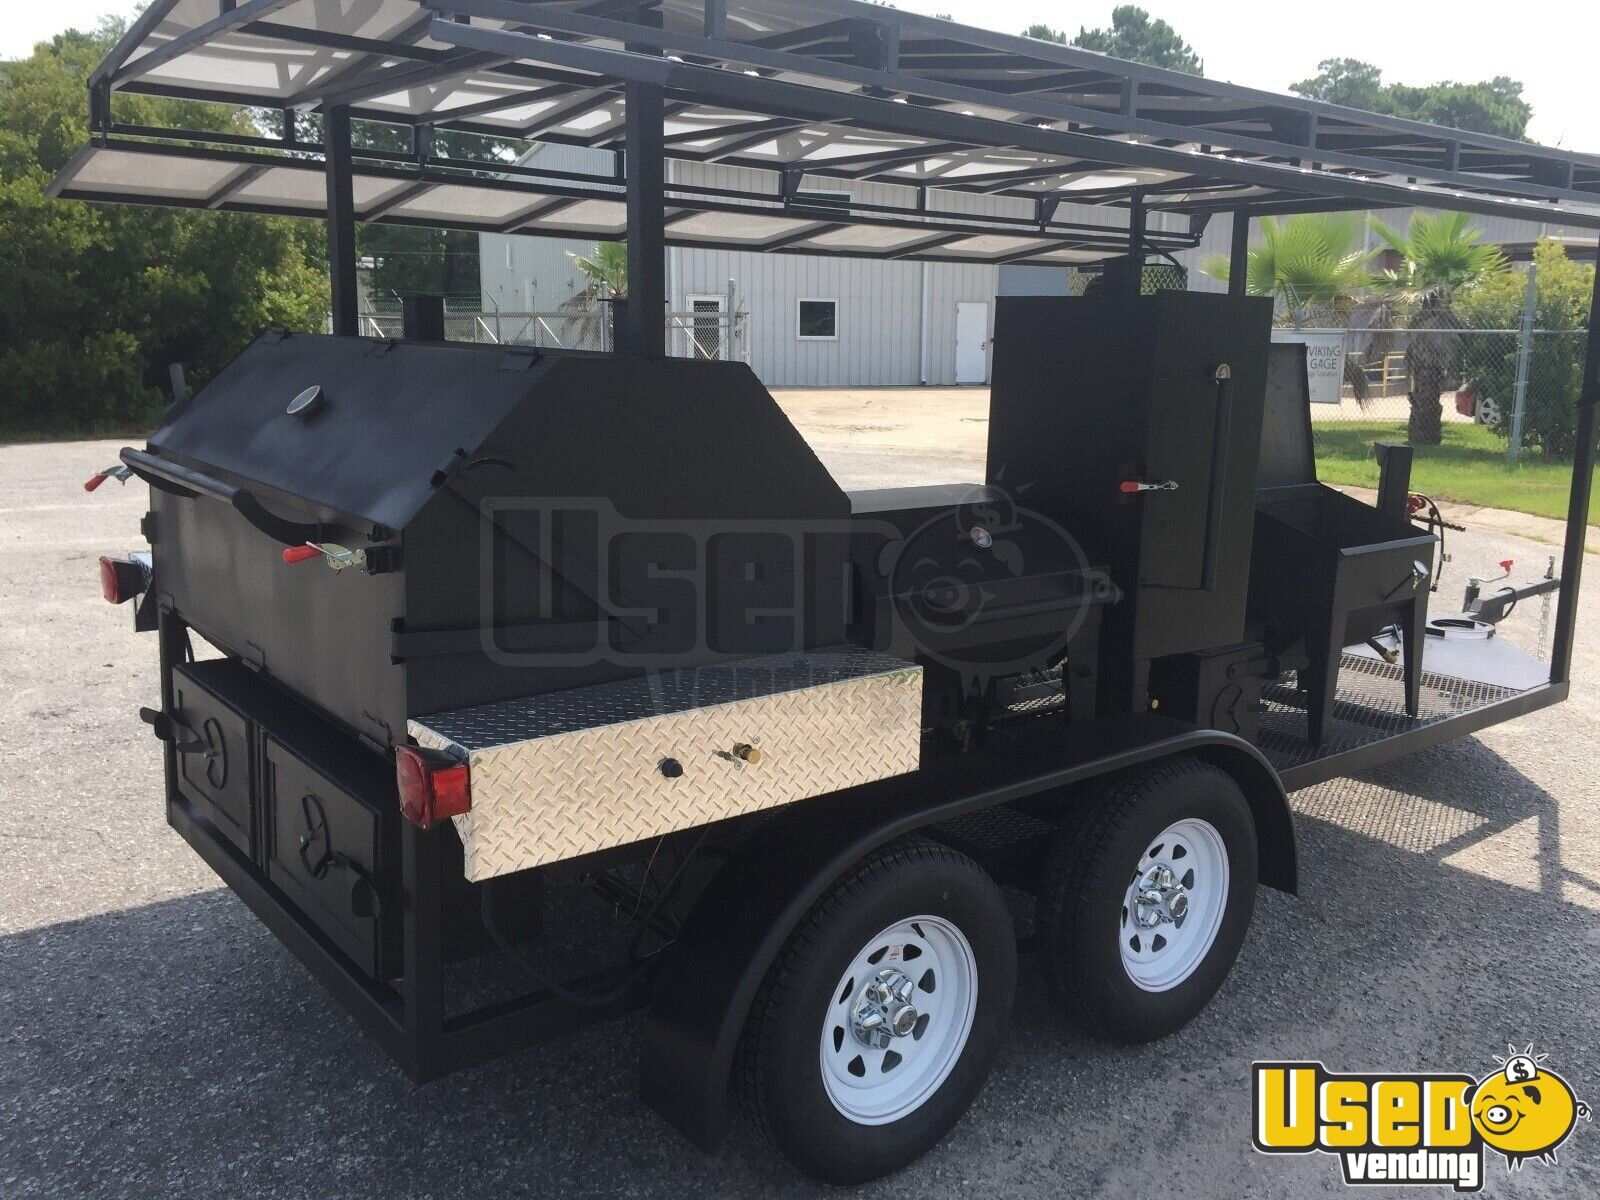 Bbq Concession Trailer Kitchen Trailer For Sale In South